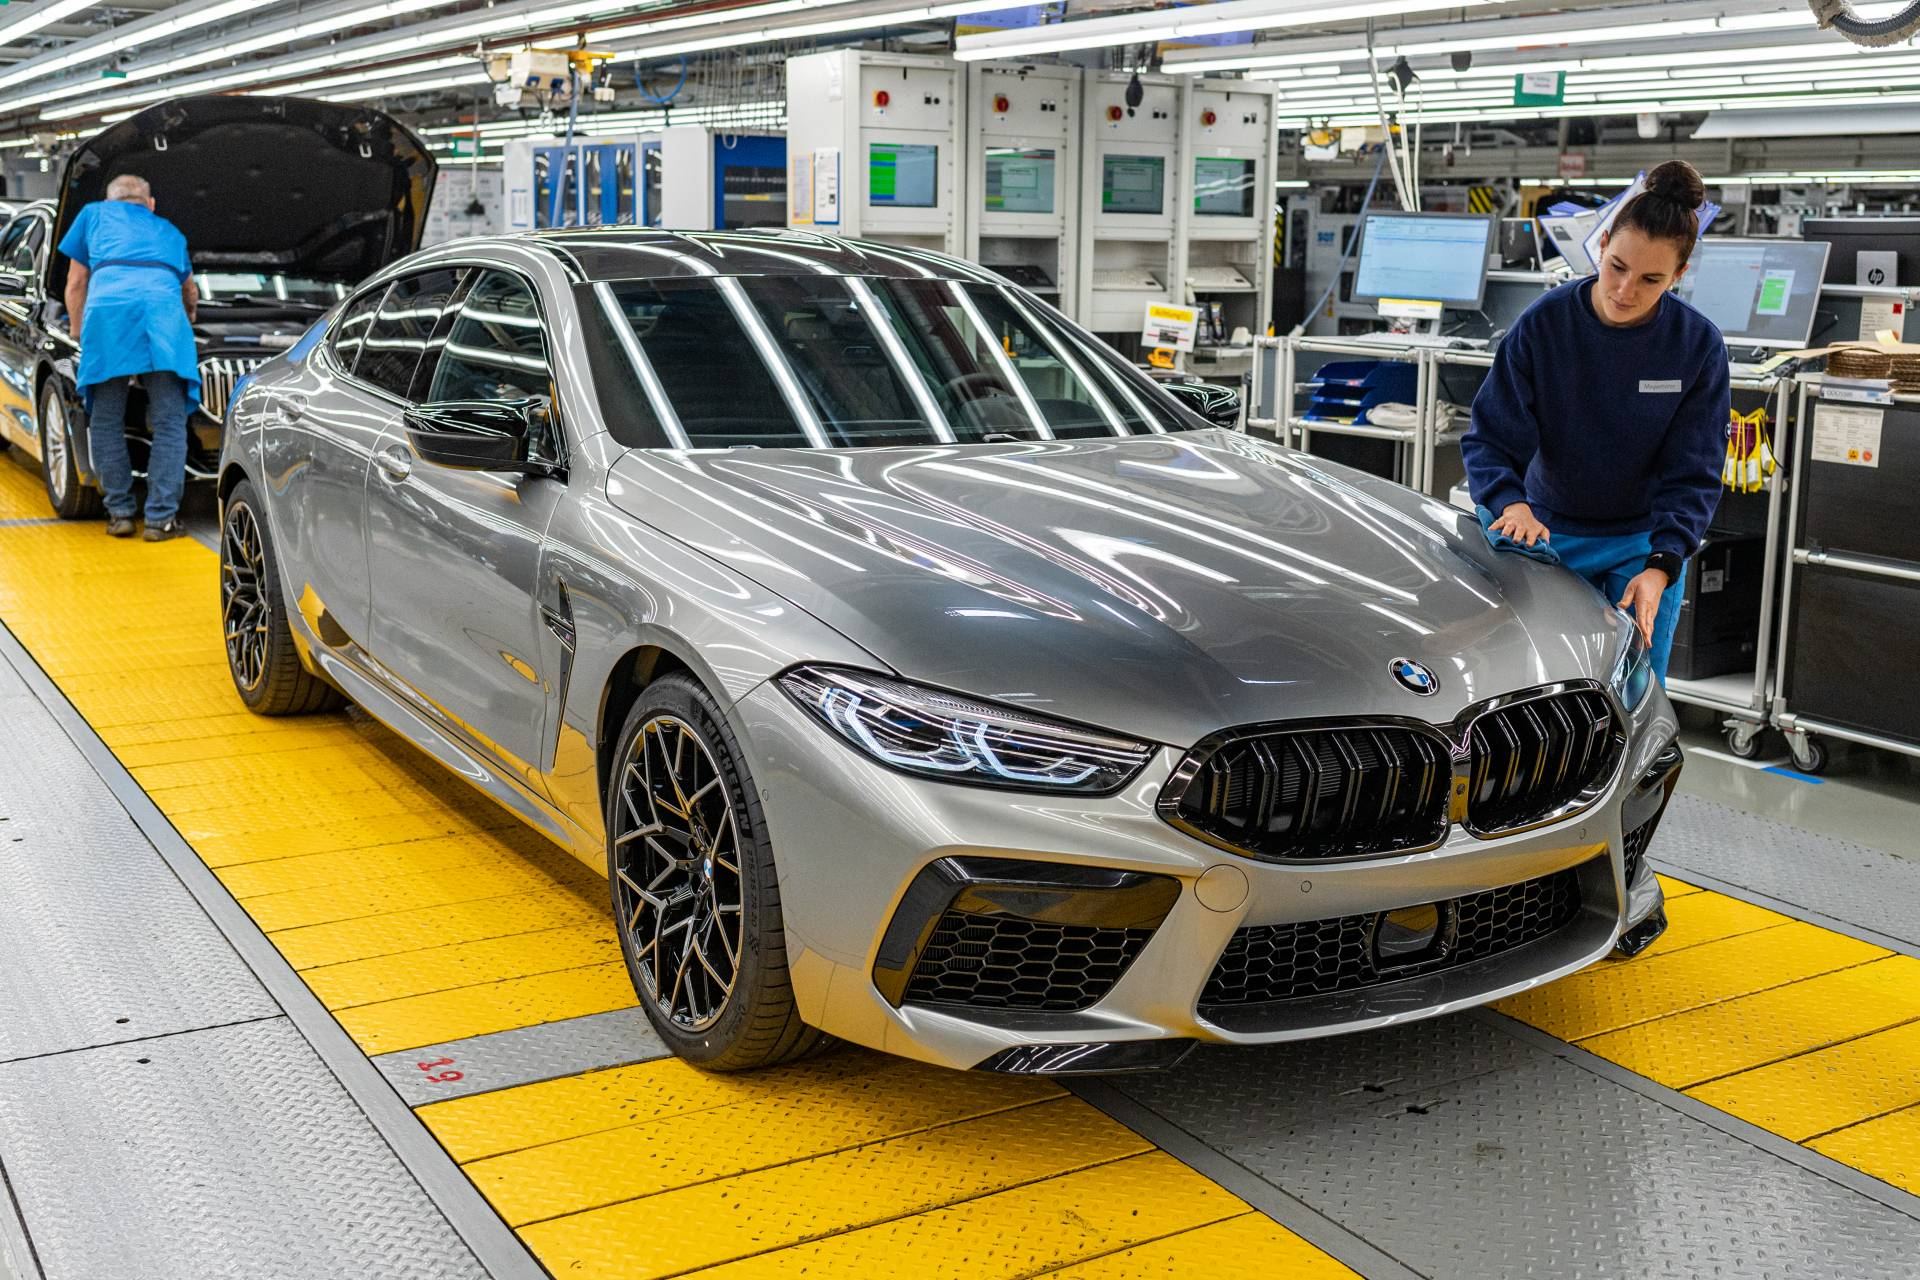 BMW-M8-Gran-Coupe-production-plant-factory-1